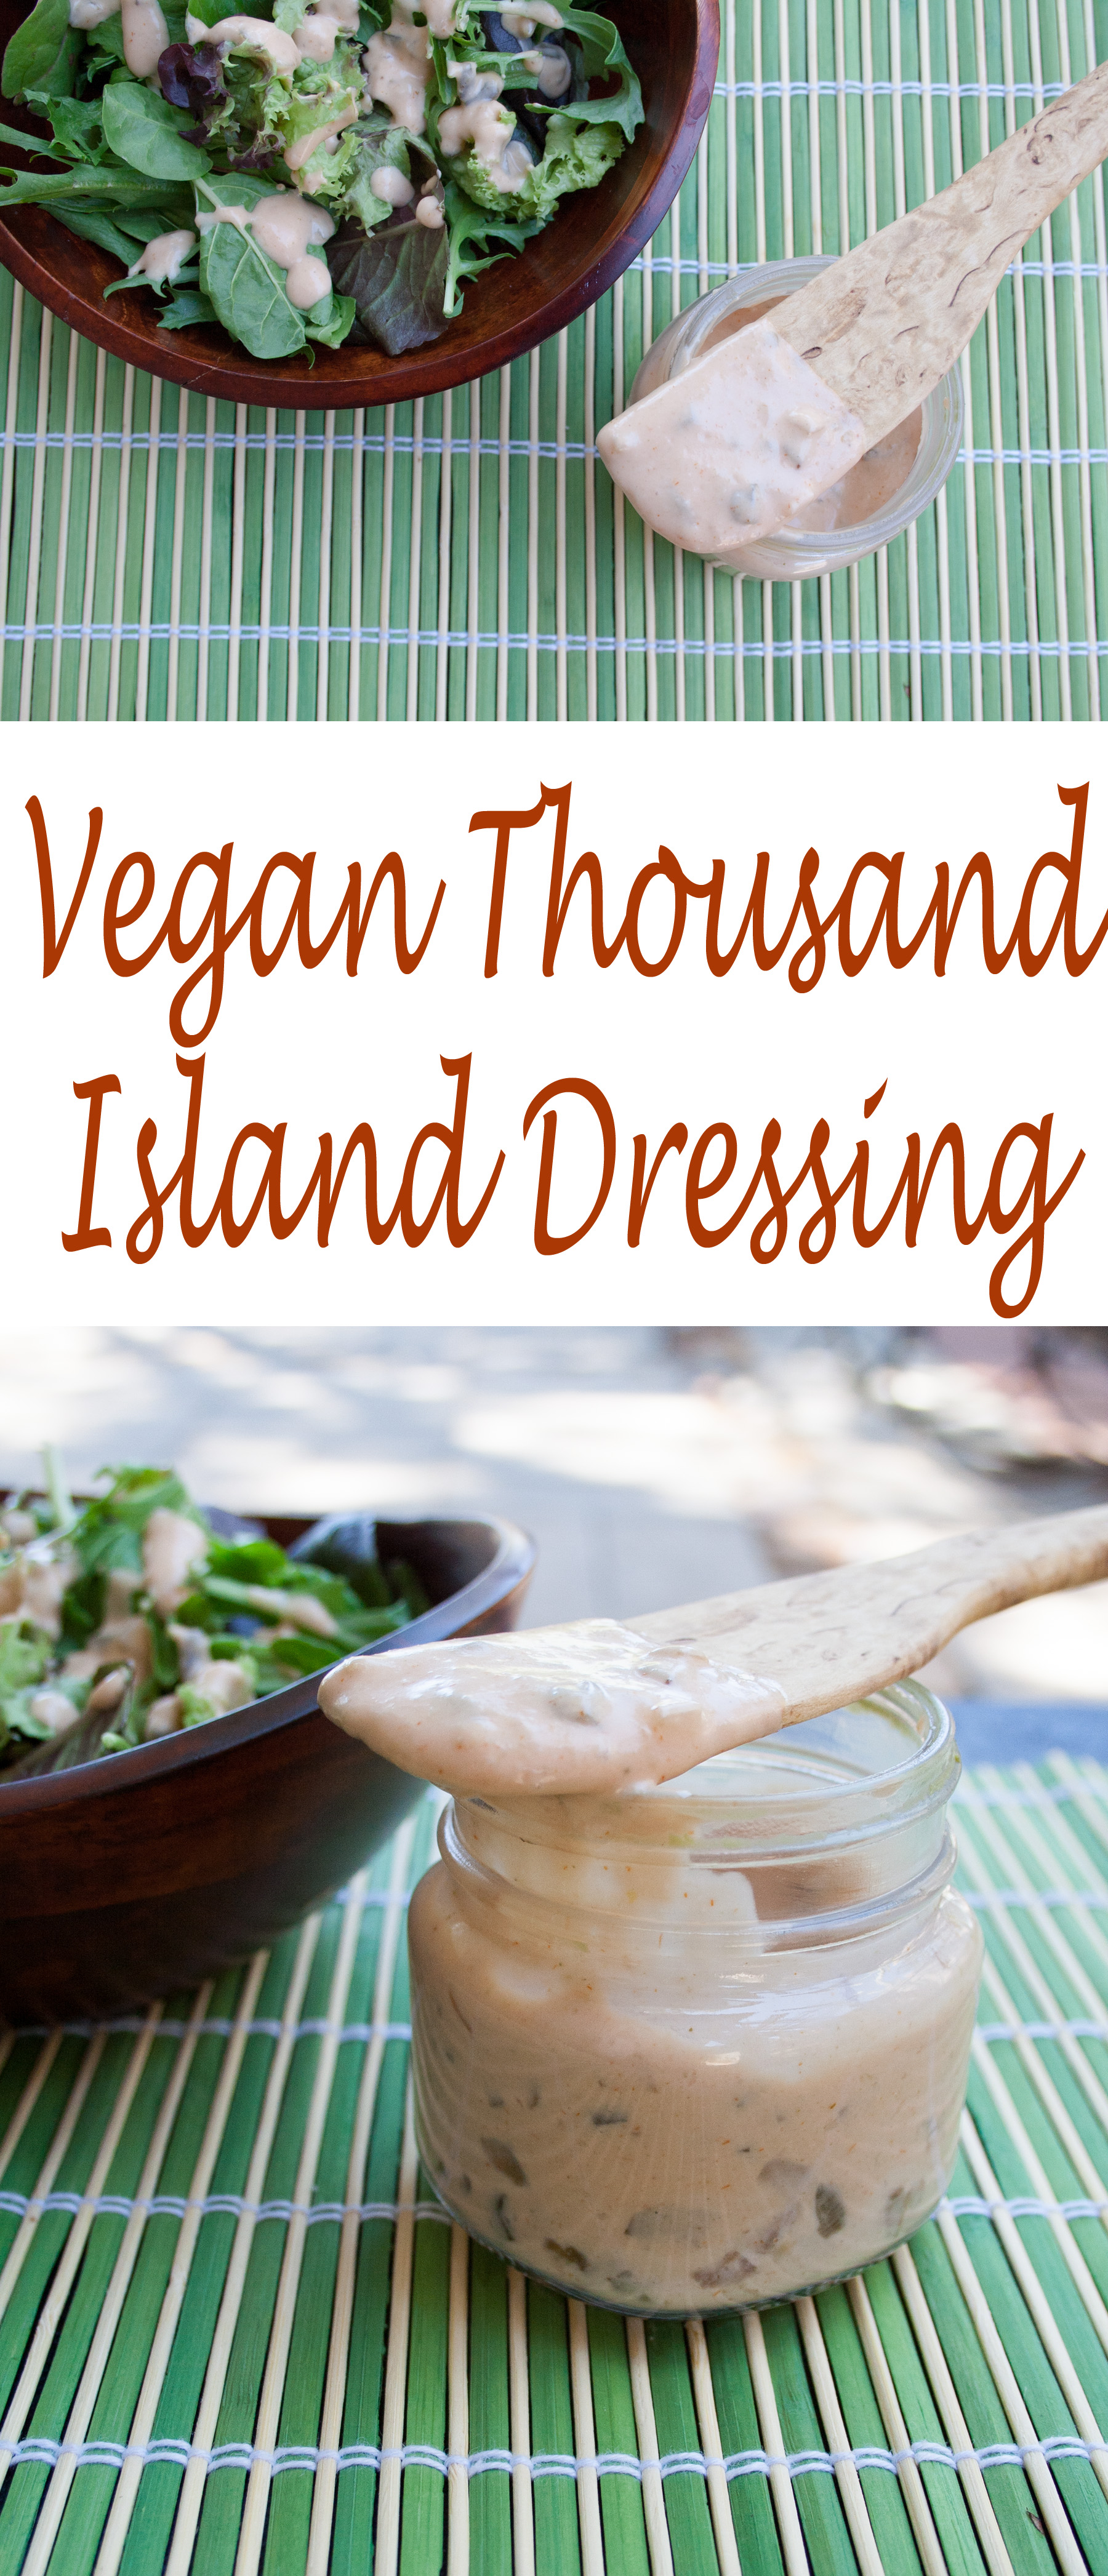 Vegan 1000 Island Dressing Recipe collage photo with text.